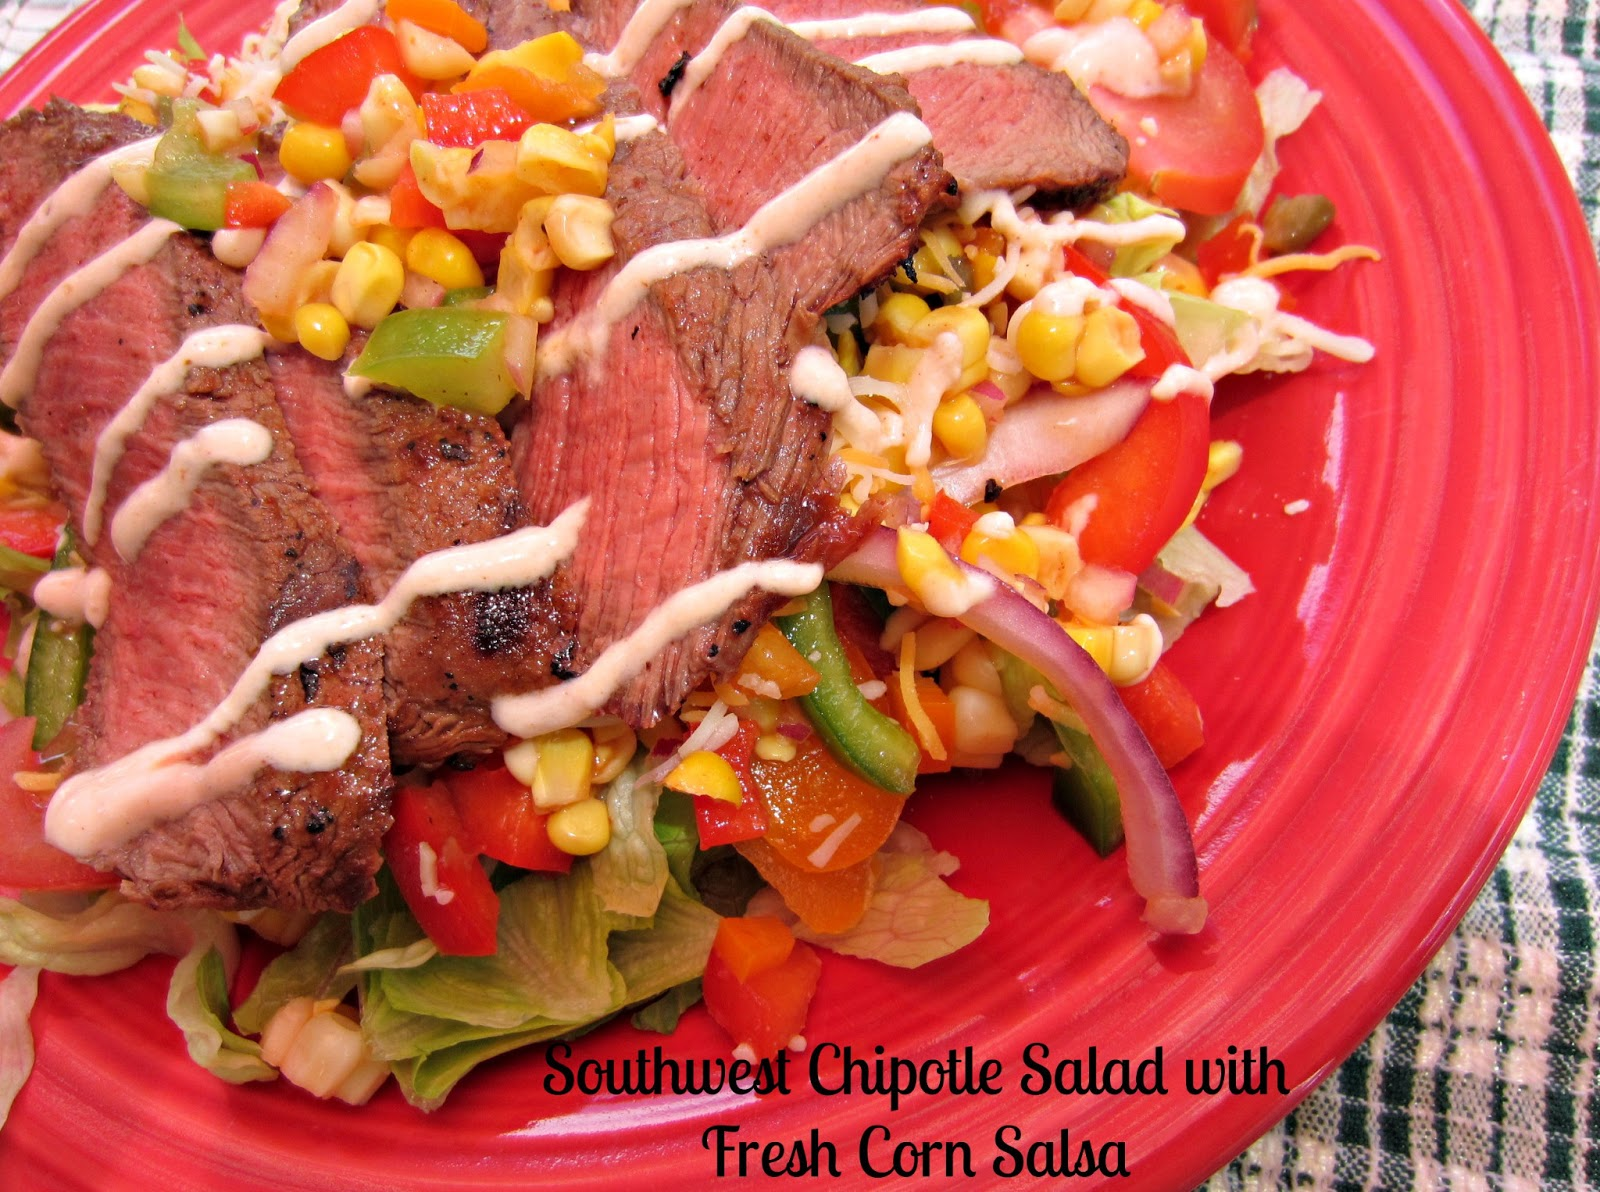 ... Adventures: Southwest Chipotle Steak Salad with Fresh Corn Salsa